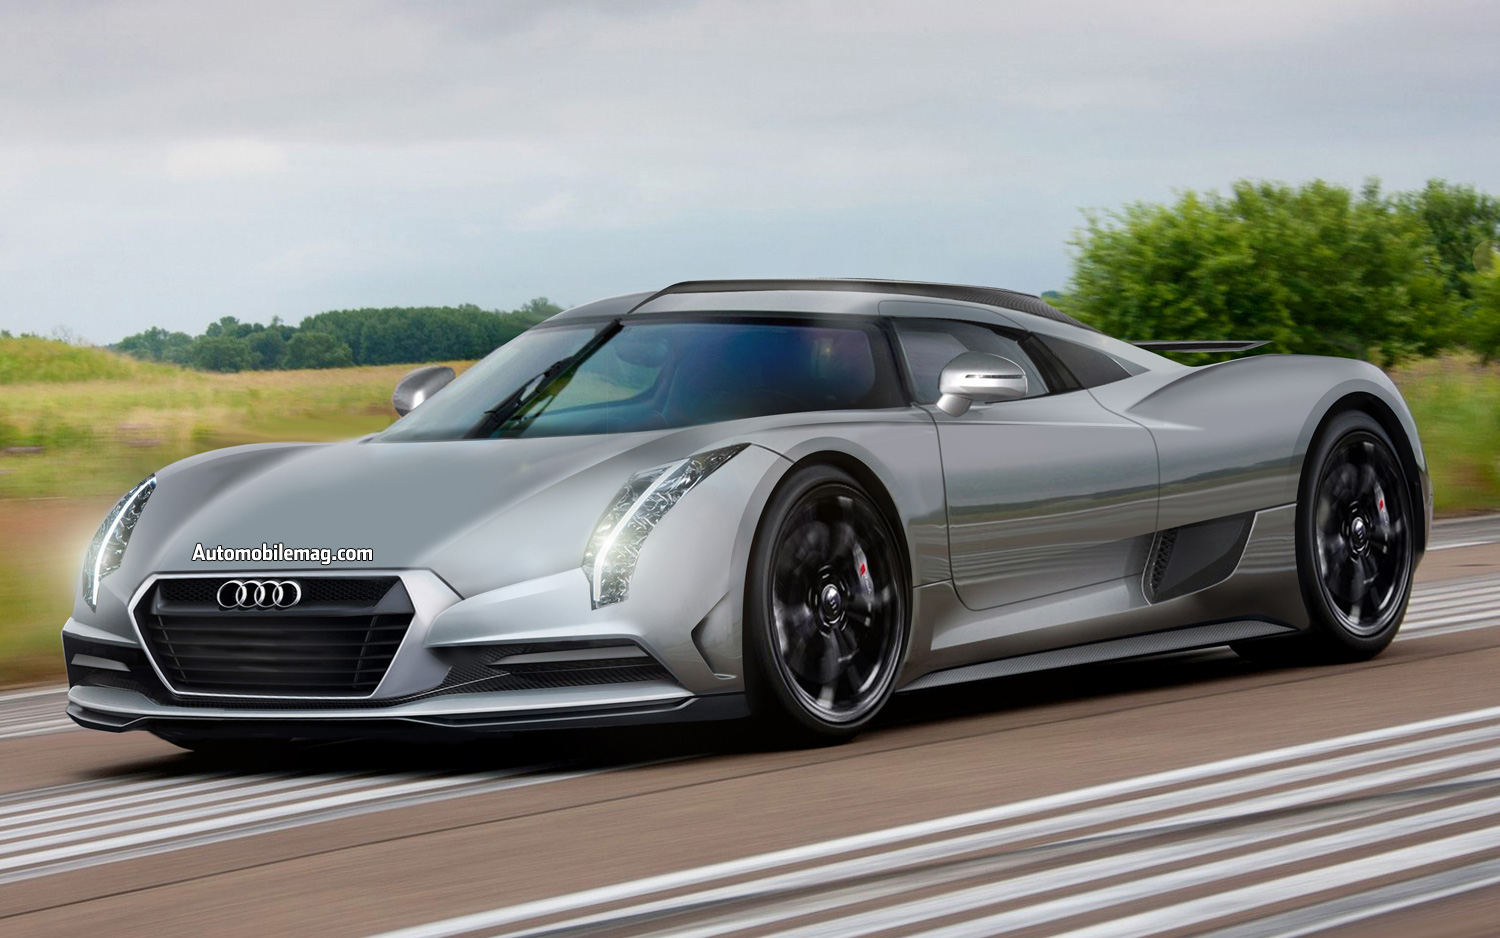 Hypercar IMAGES VIDEOS